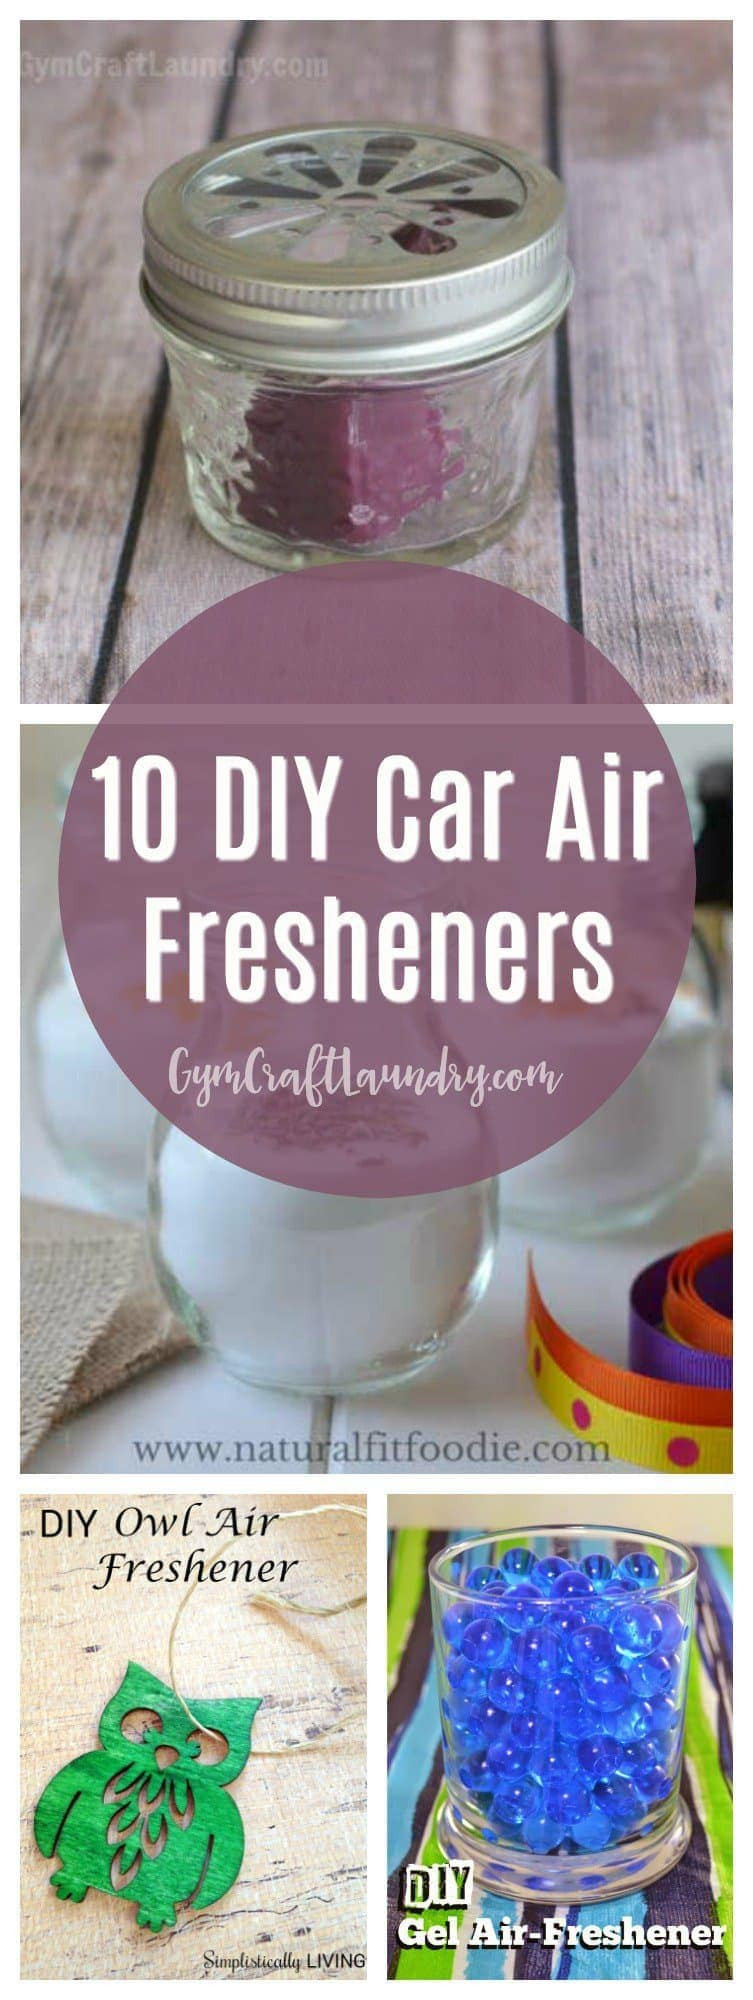 Best ideas about DIY Car Air Freshener . Save or Pin 10 Homemade Car Air Fresheners you can make in a weekend Now.